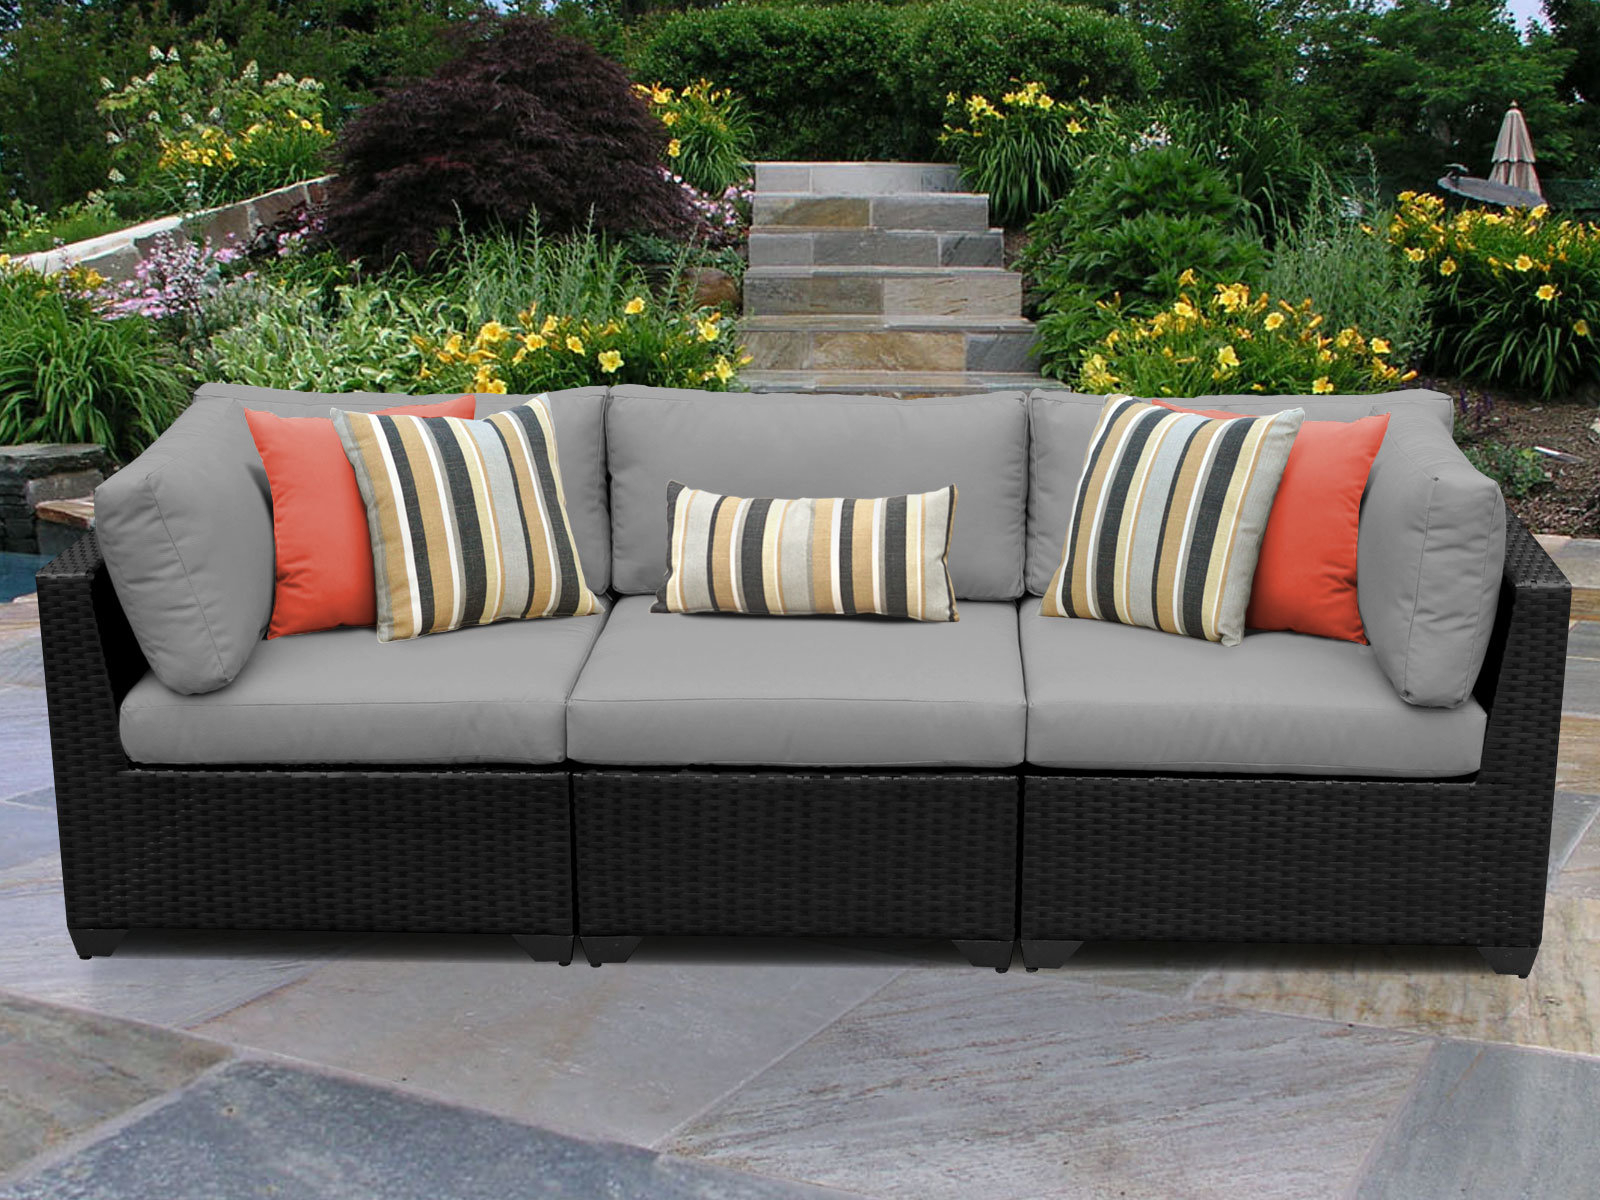 Fashionable Purington Circular Patio Sectionals With Cushions Throughout Camak Patio Sofa With Cushions (View 5 of 20)